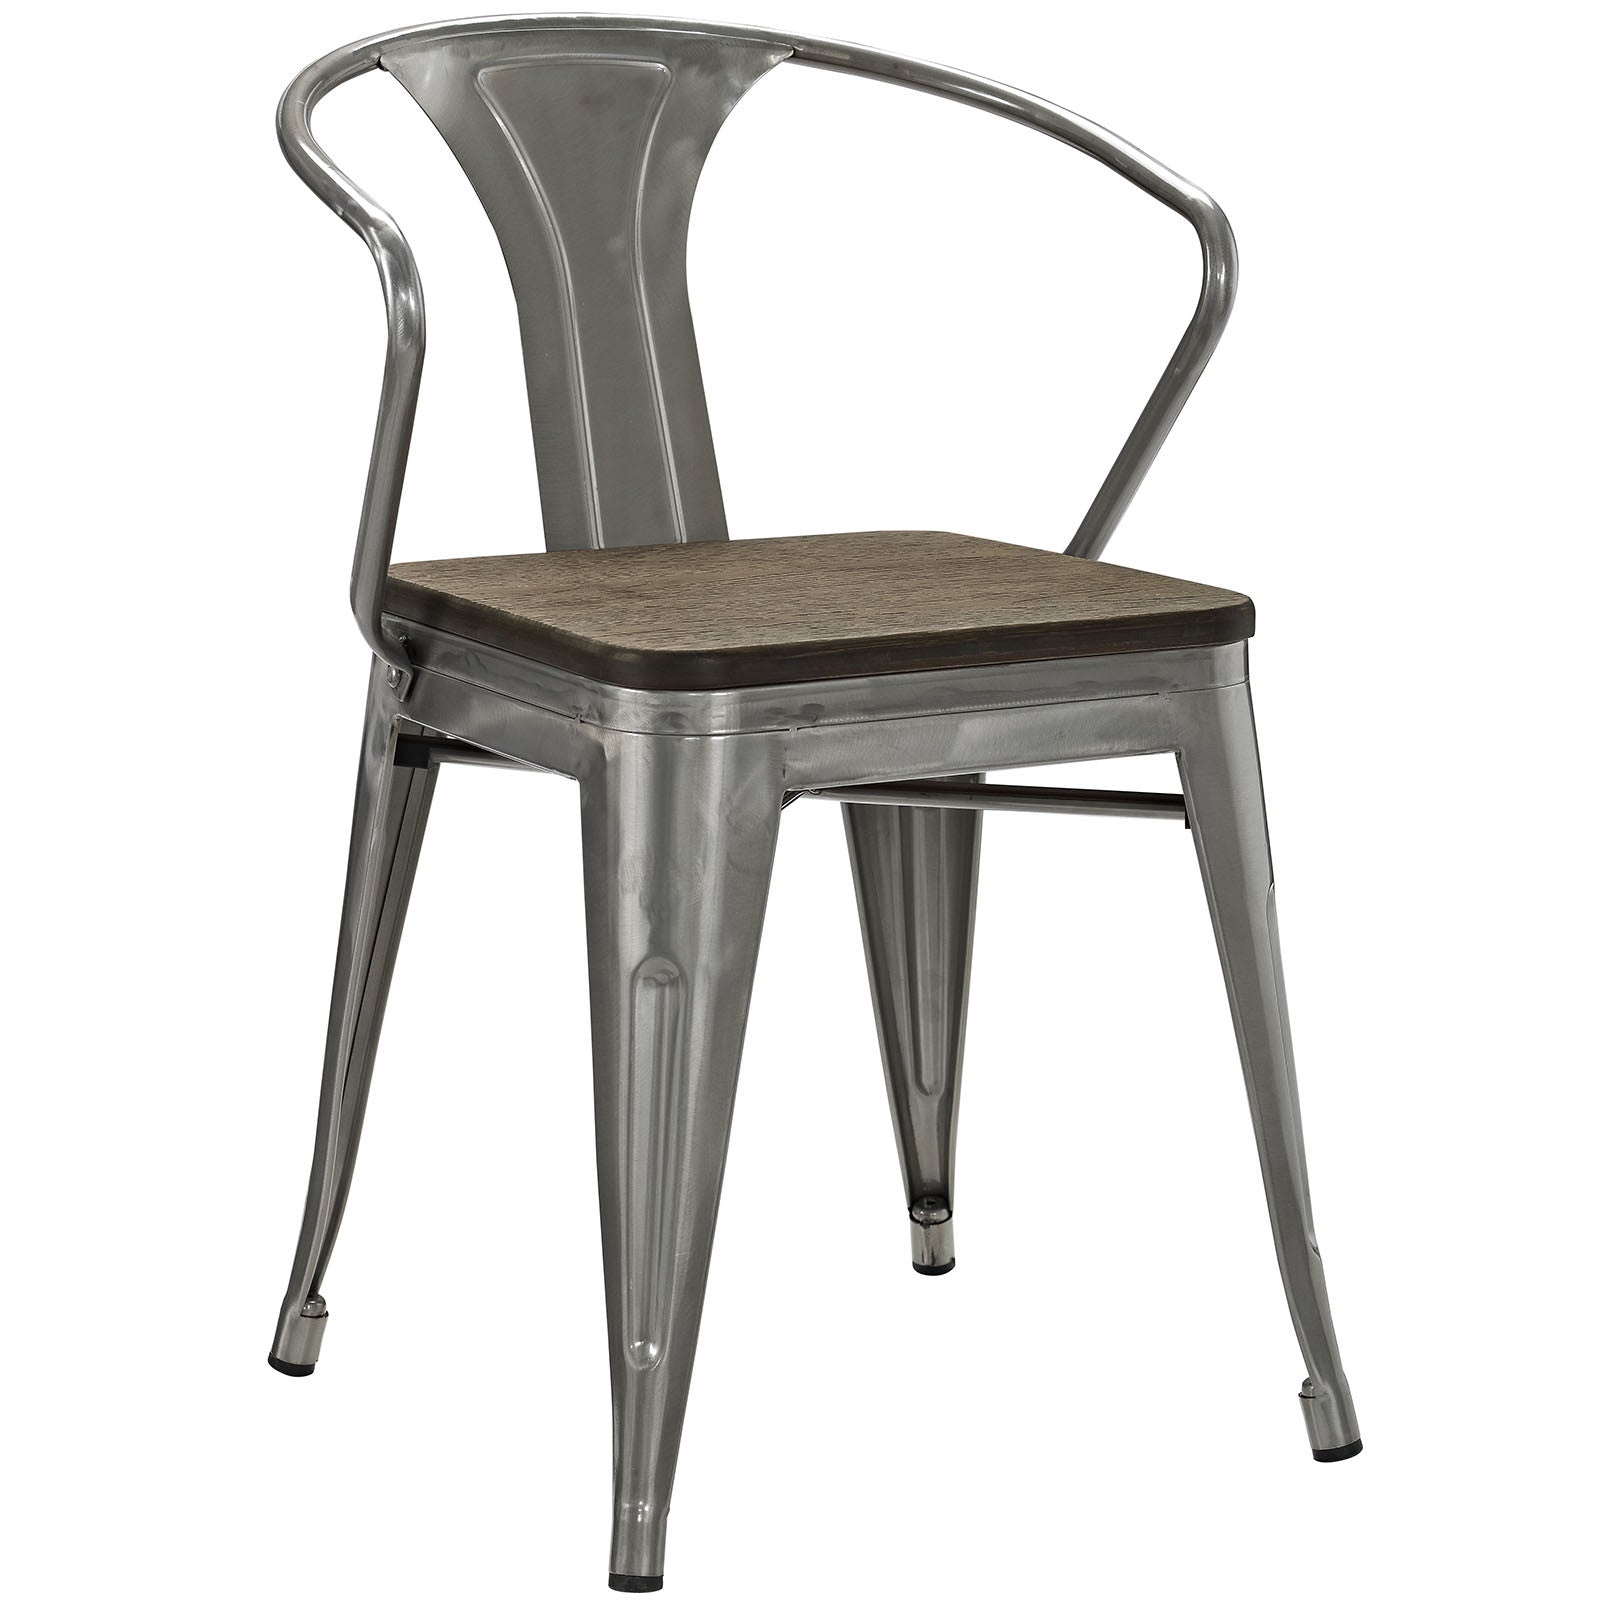 Panora Bamboo Dining Chair Gunmetal FROY